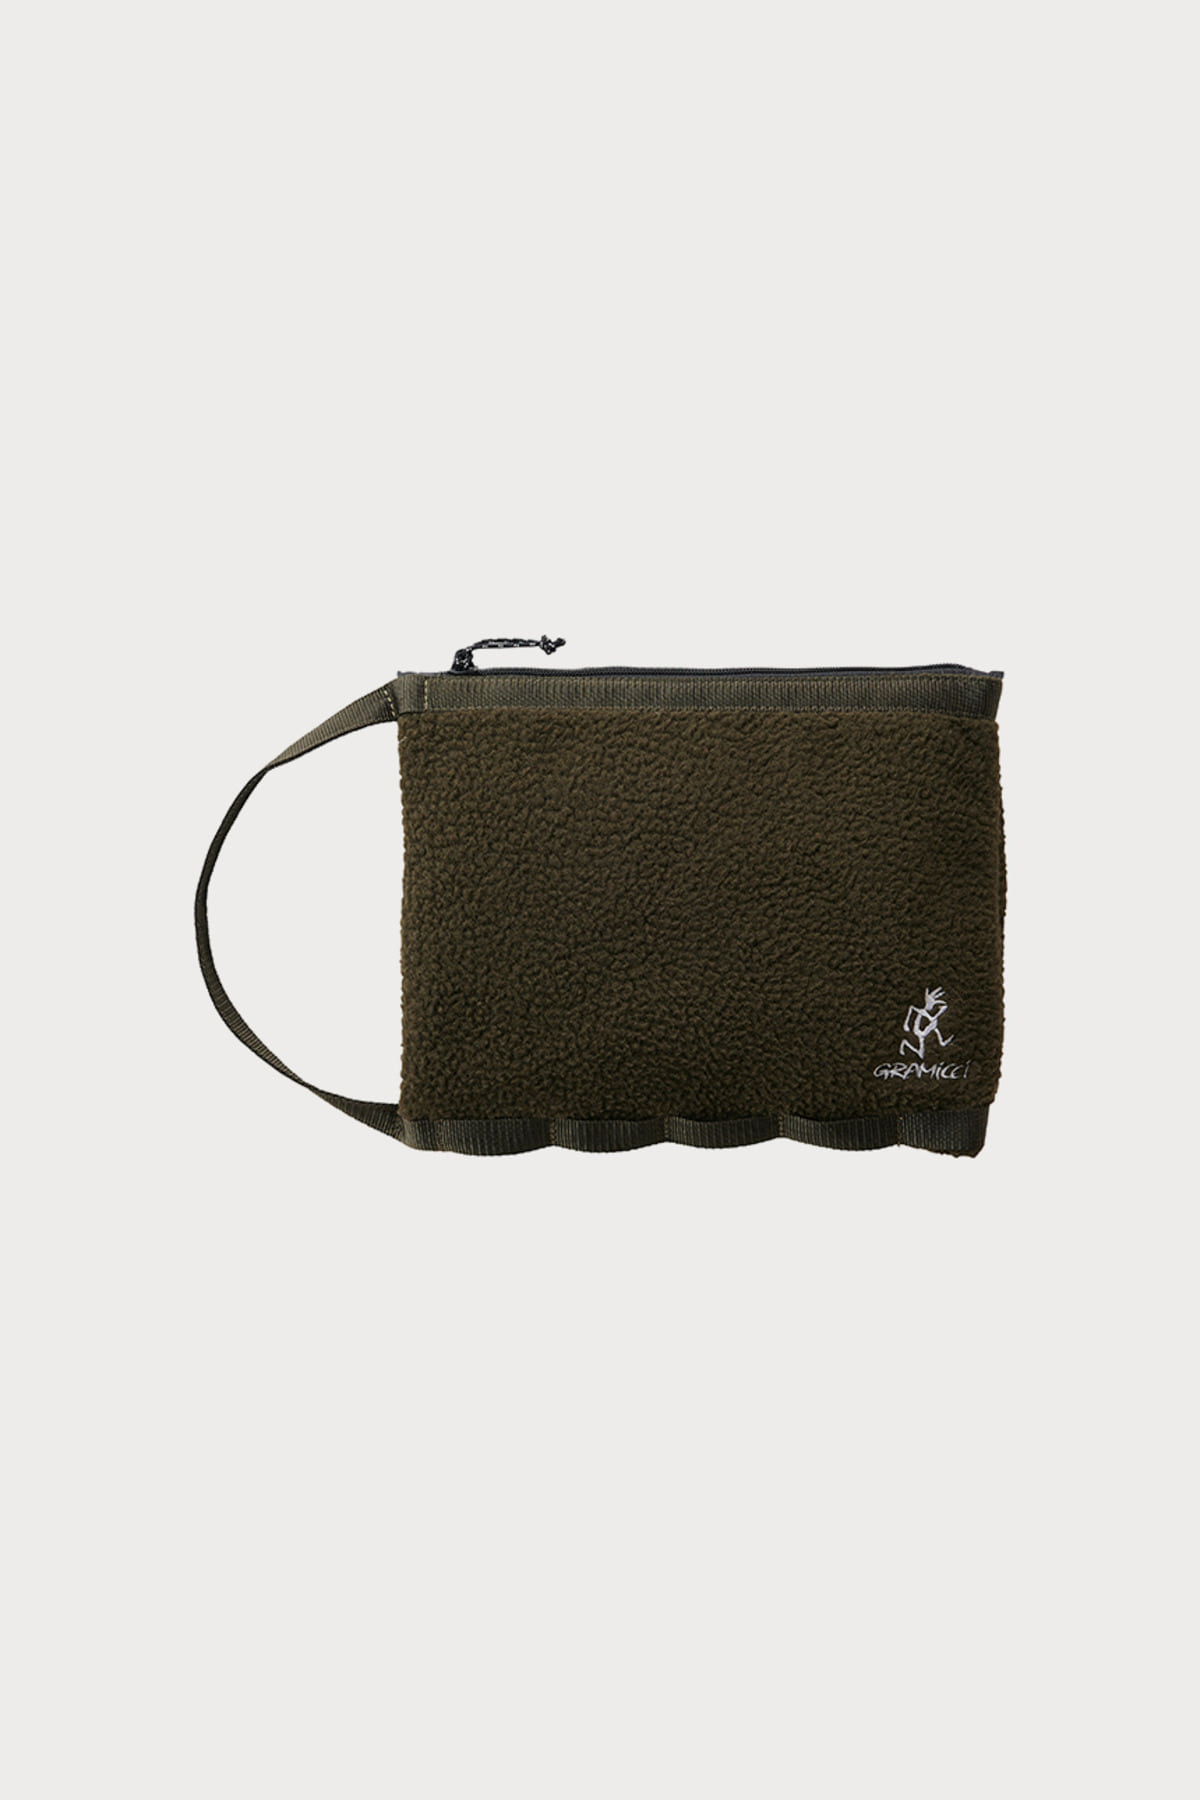 BOA FLEECE HANDLE POUCH OLIVE